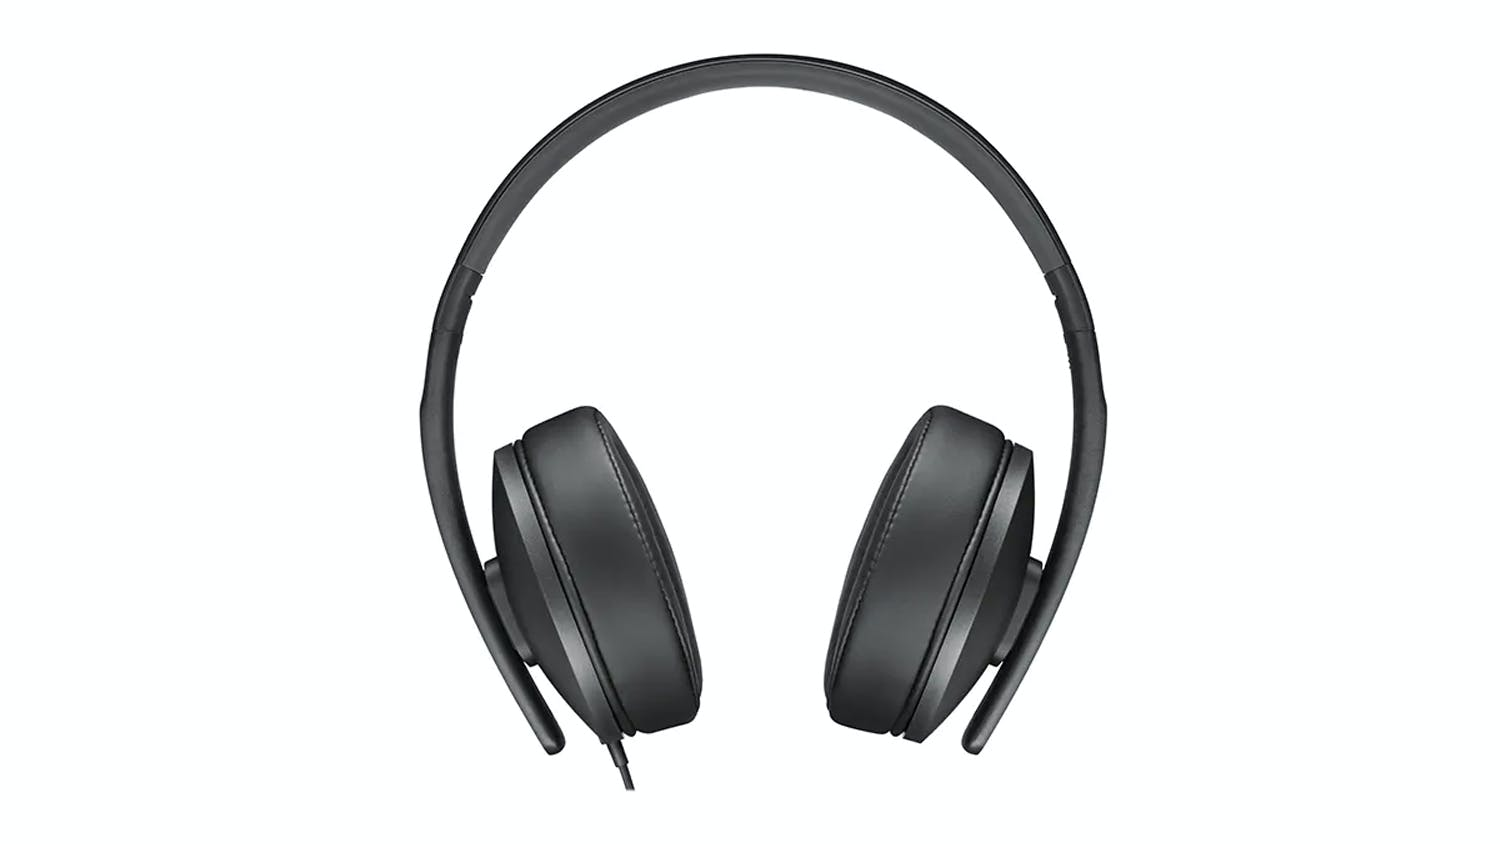 Sennheiser HD 300 Over-Ear Headphones